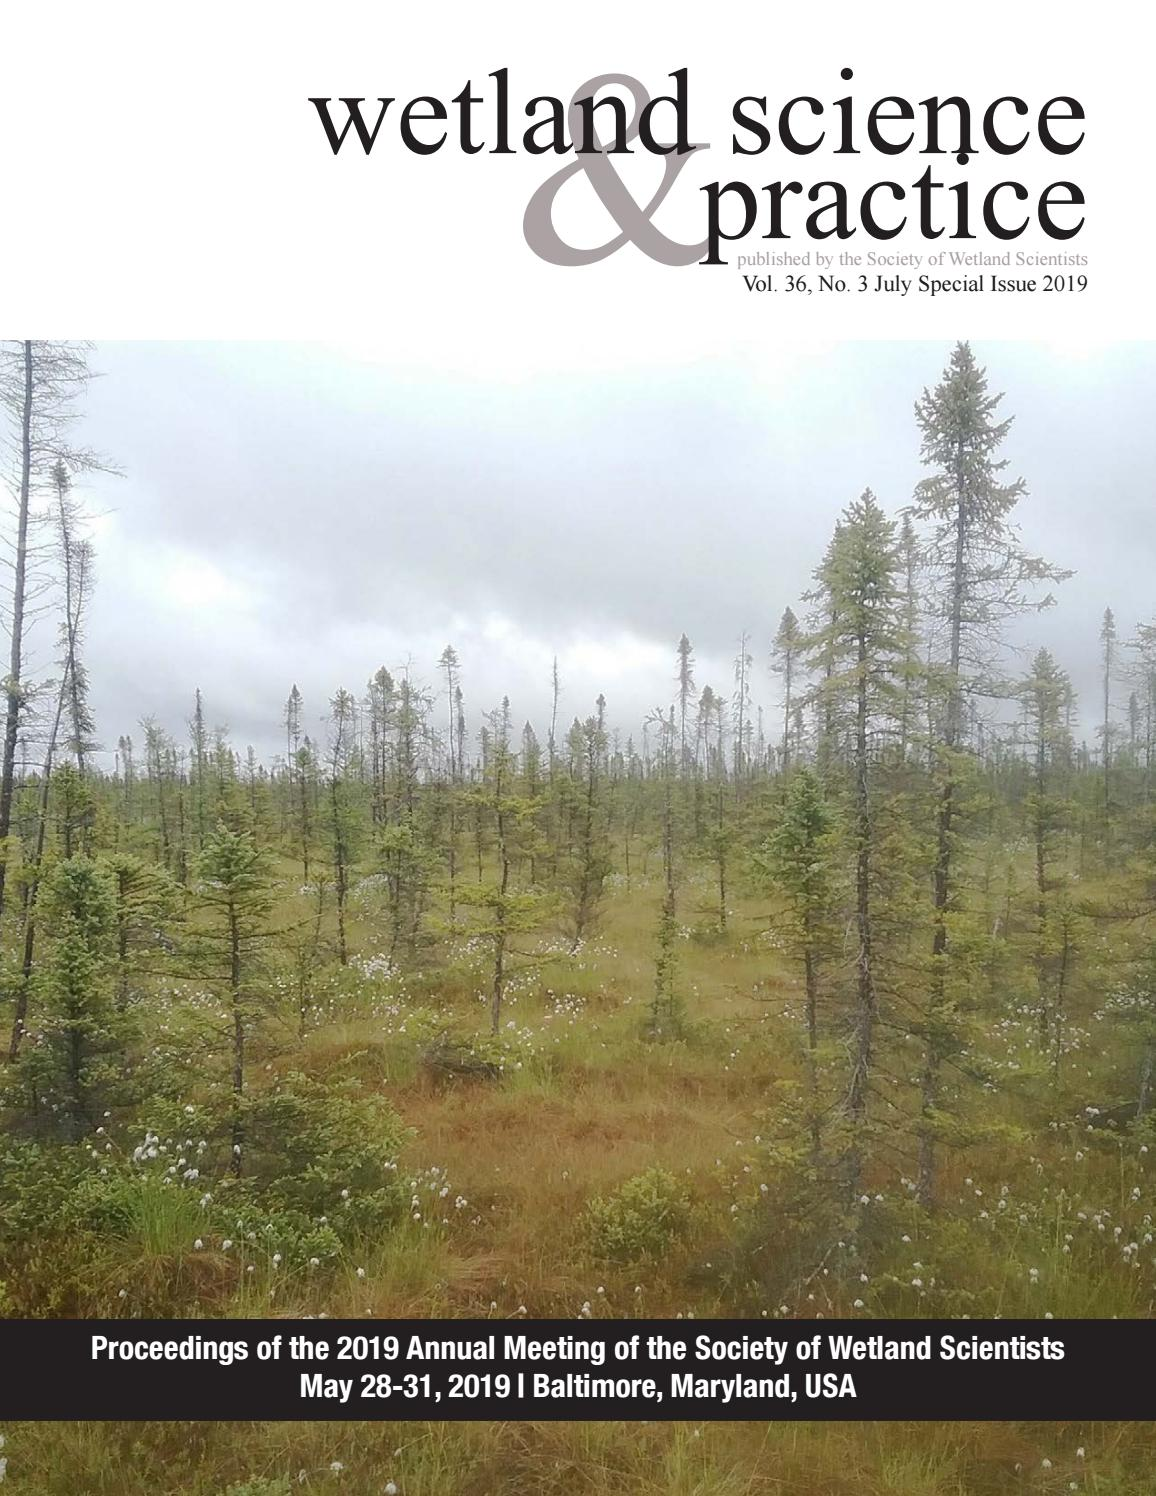 July 2019 Wetland Science & Practice Special Issue by Society of